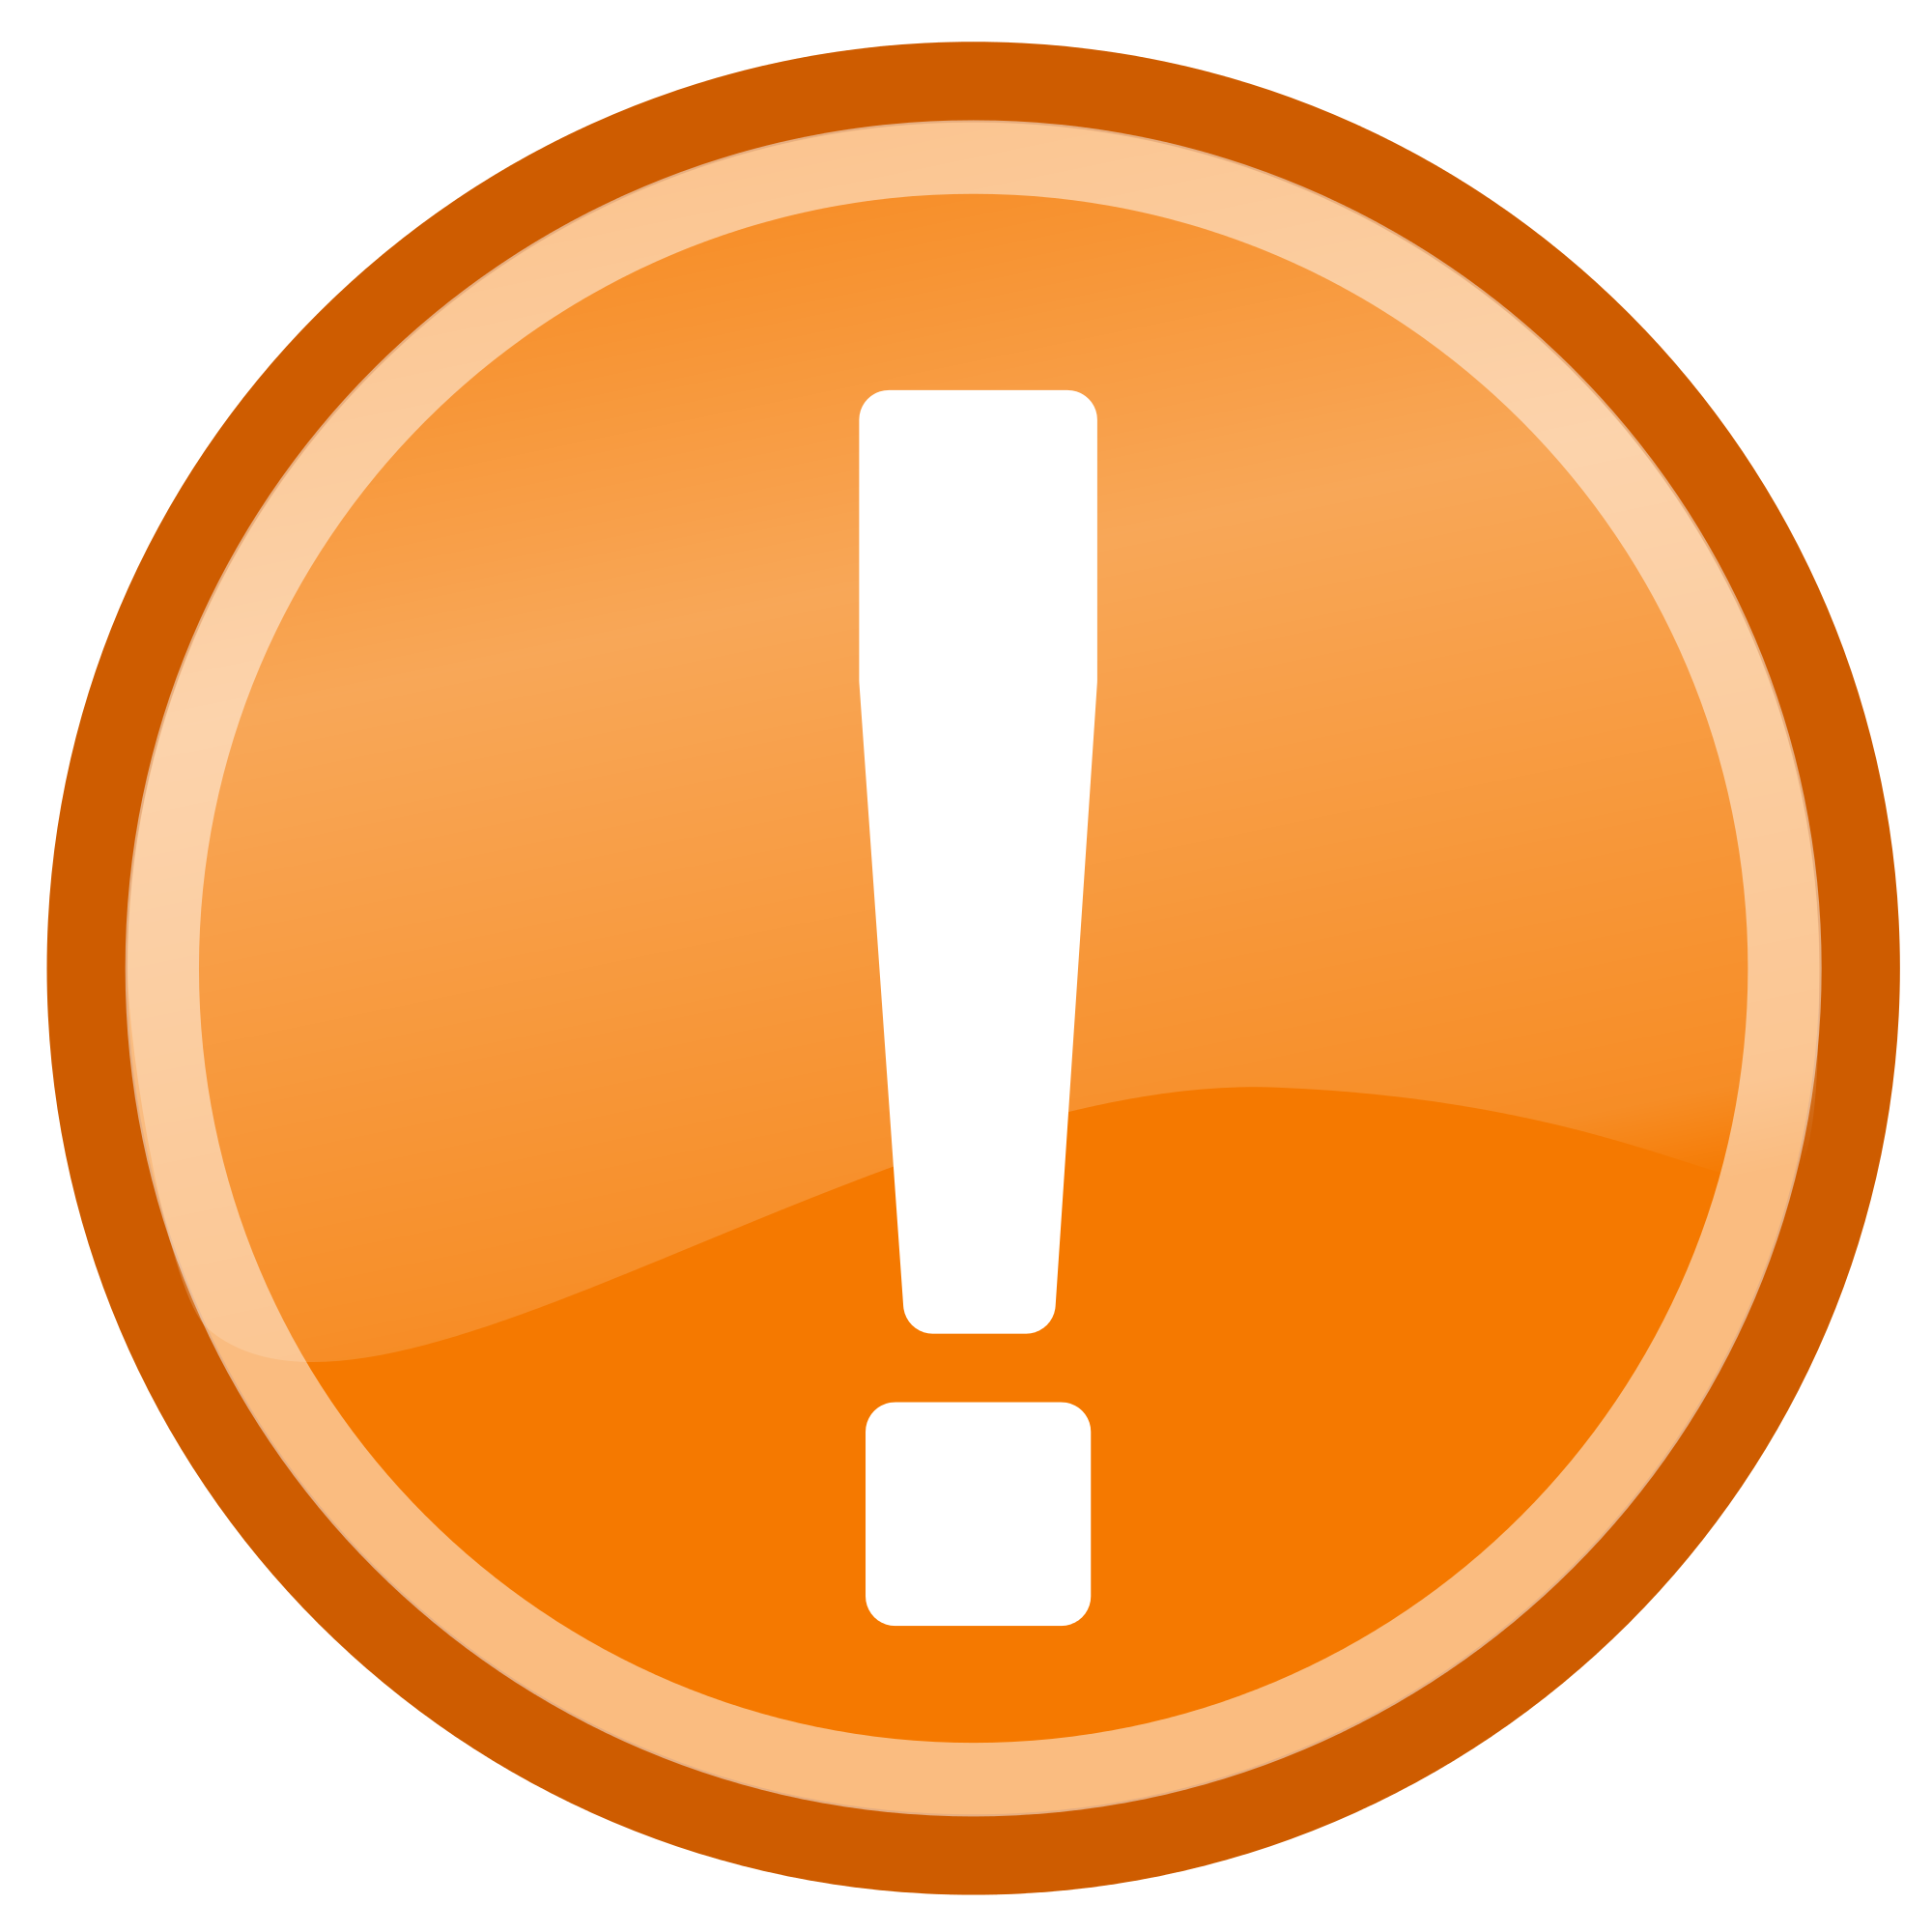 Important clipart important point. File svg wikimedia commons